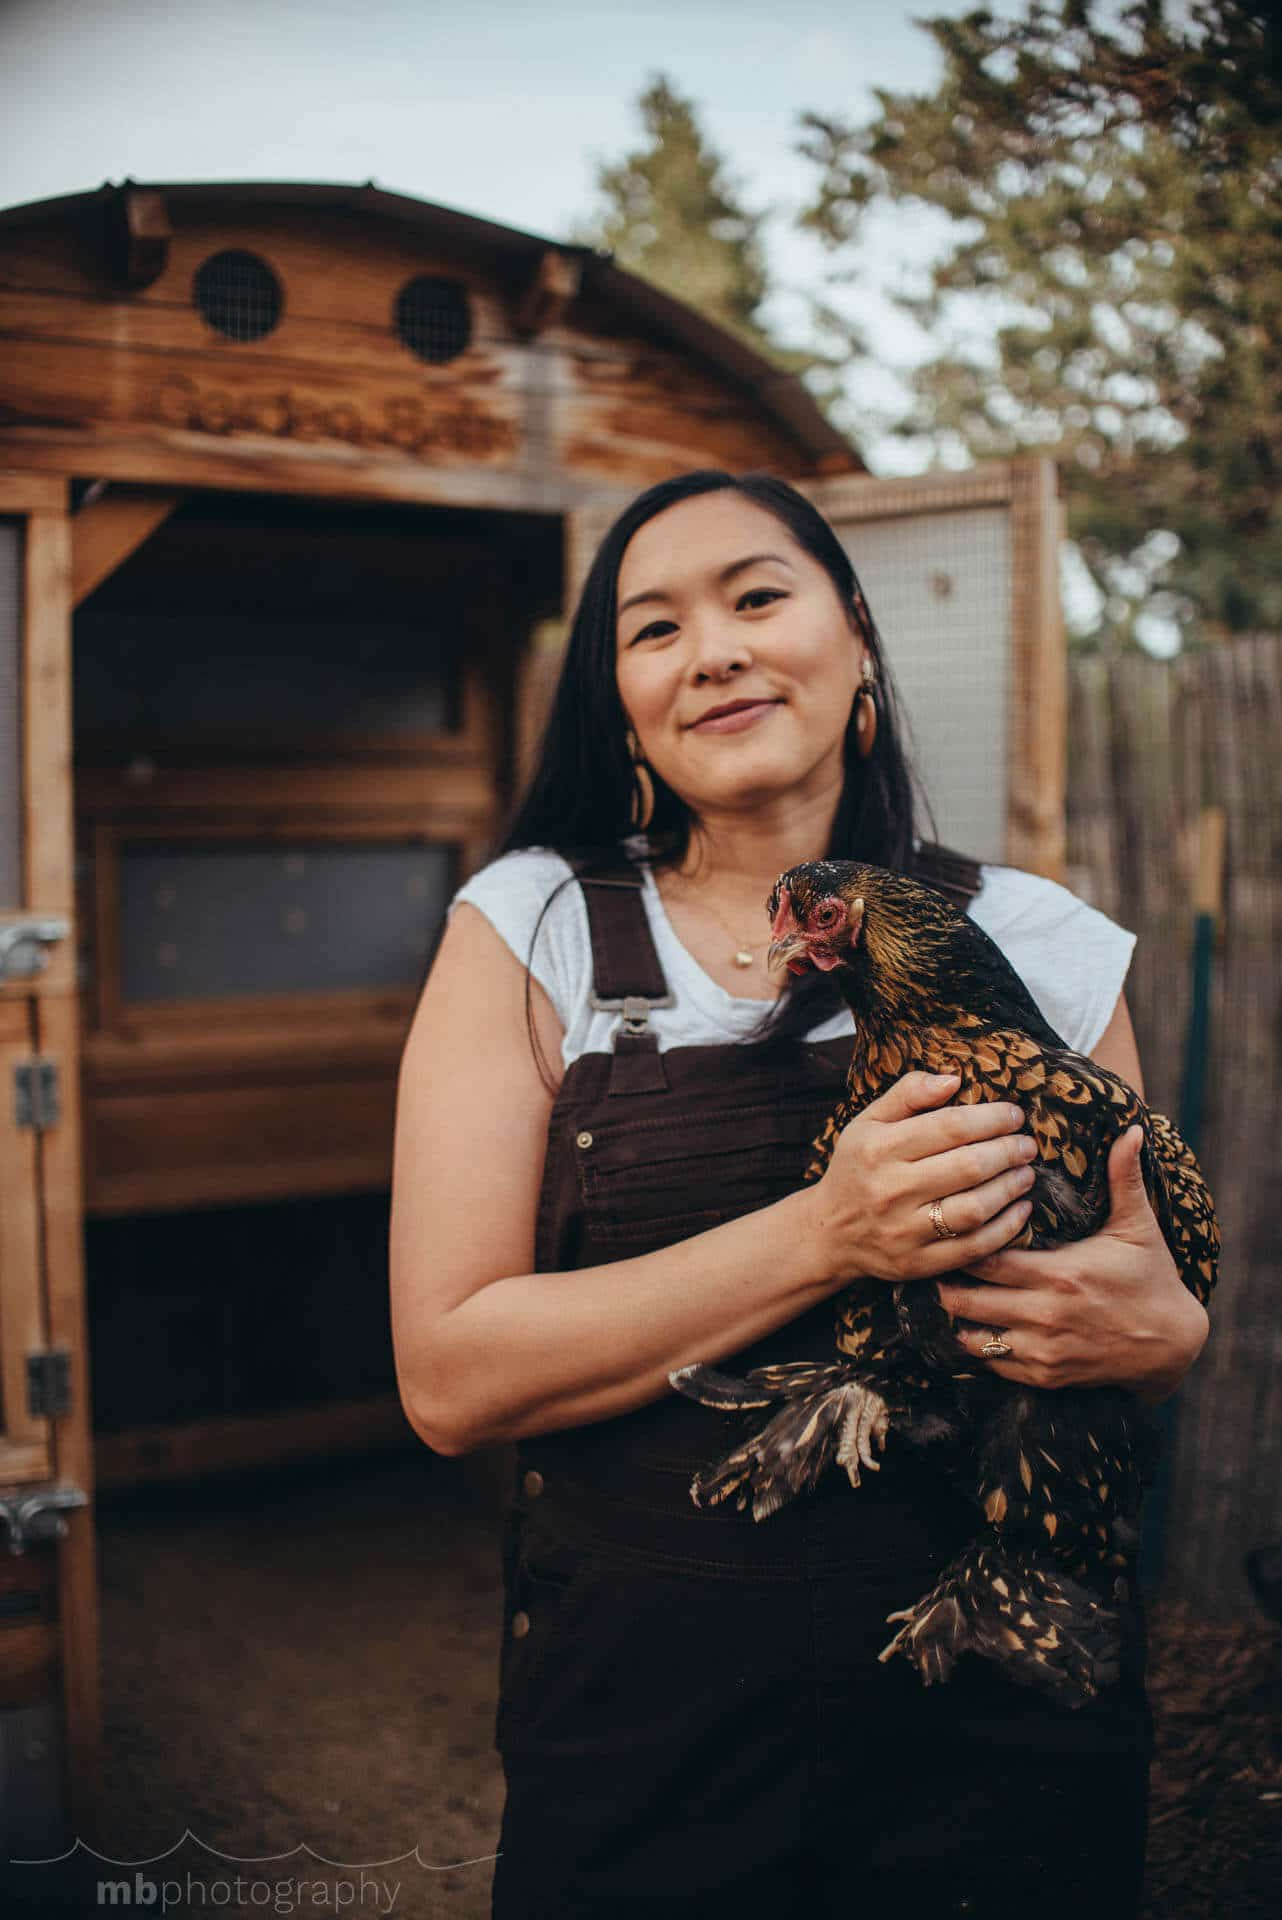 Garden Betty holding a Golden Laced Cochin chicken in front of the coop